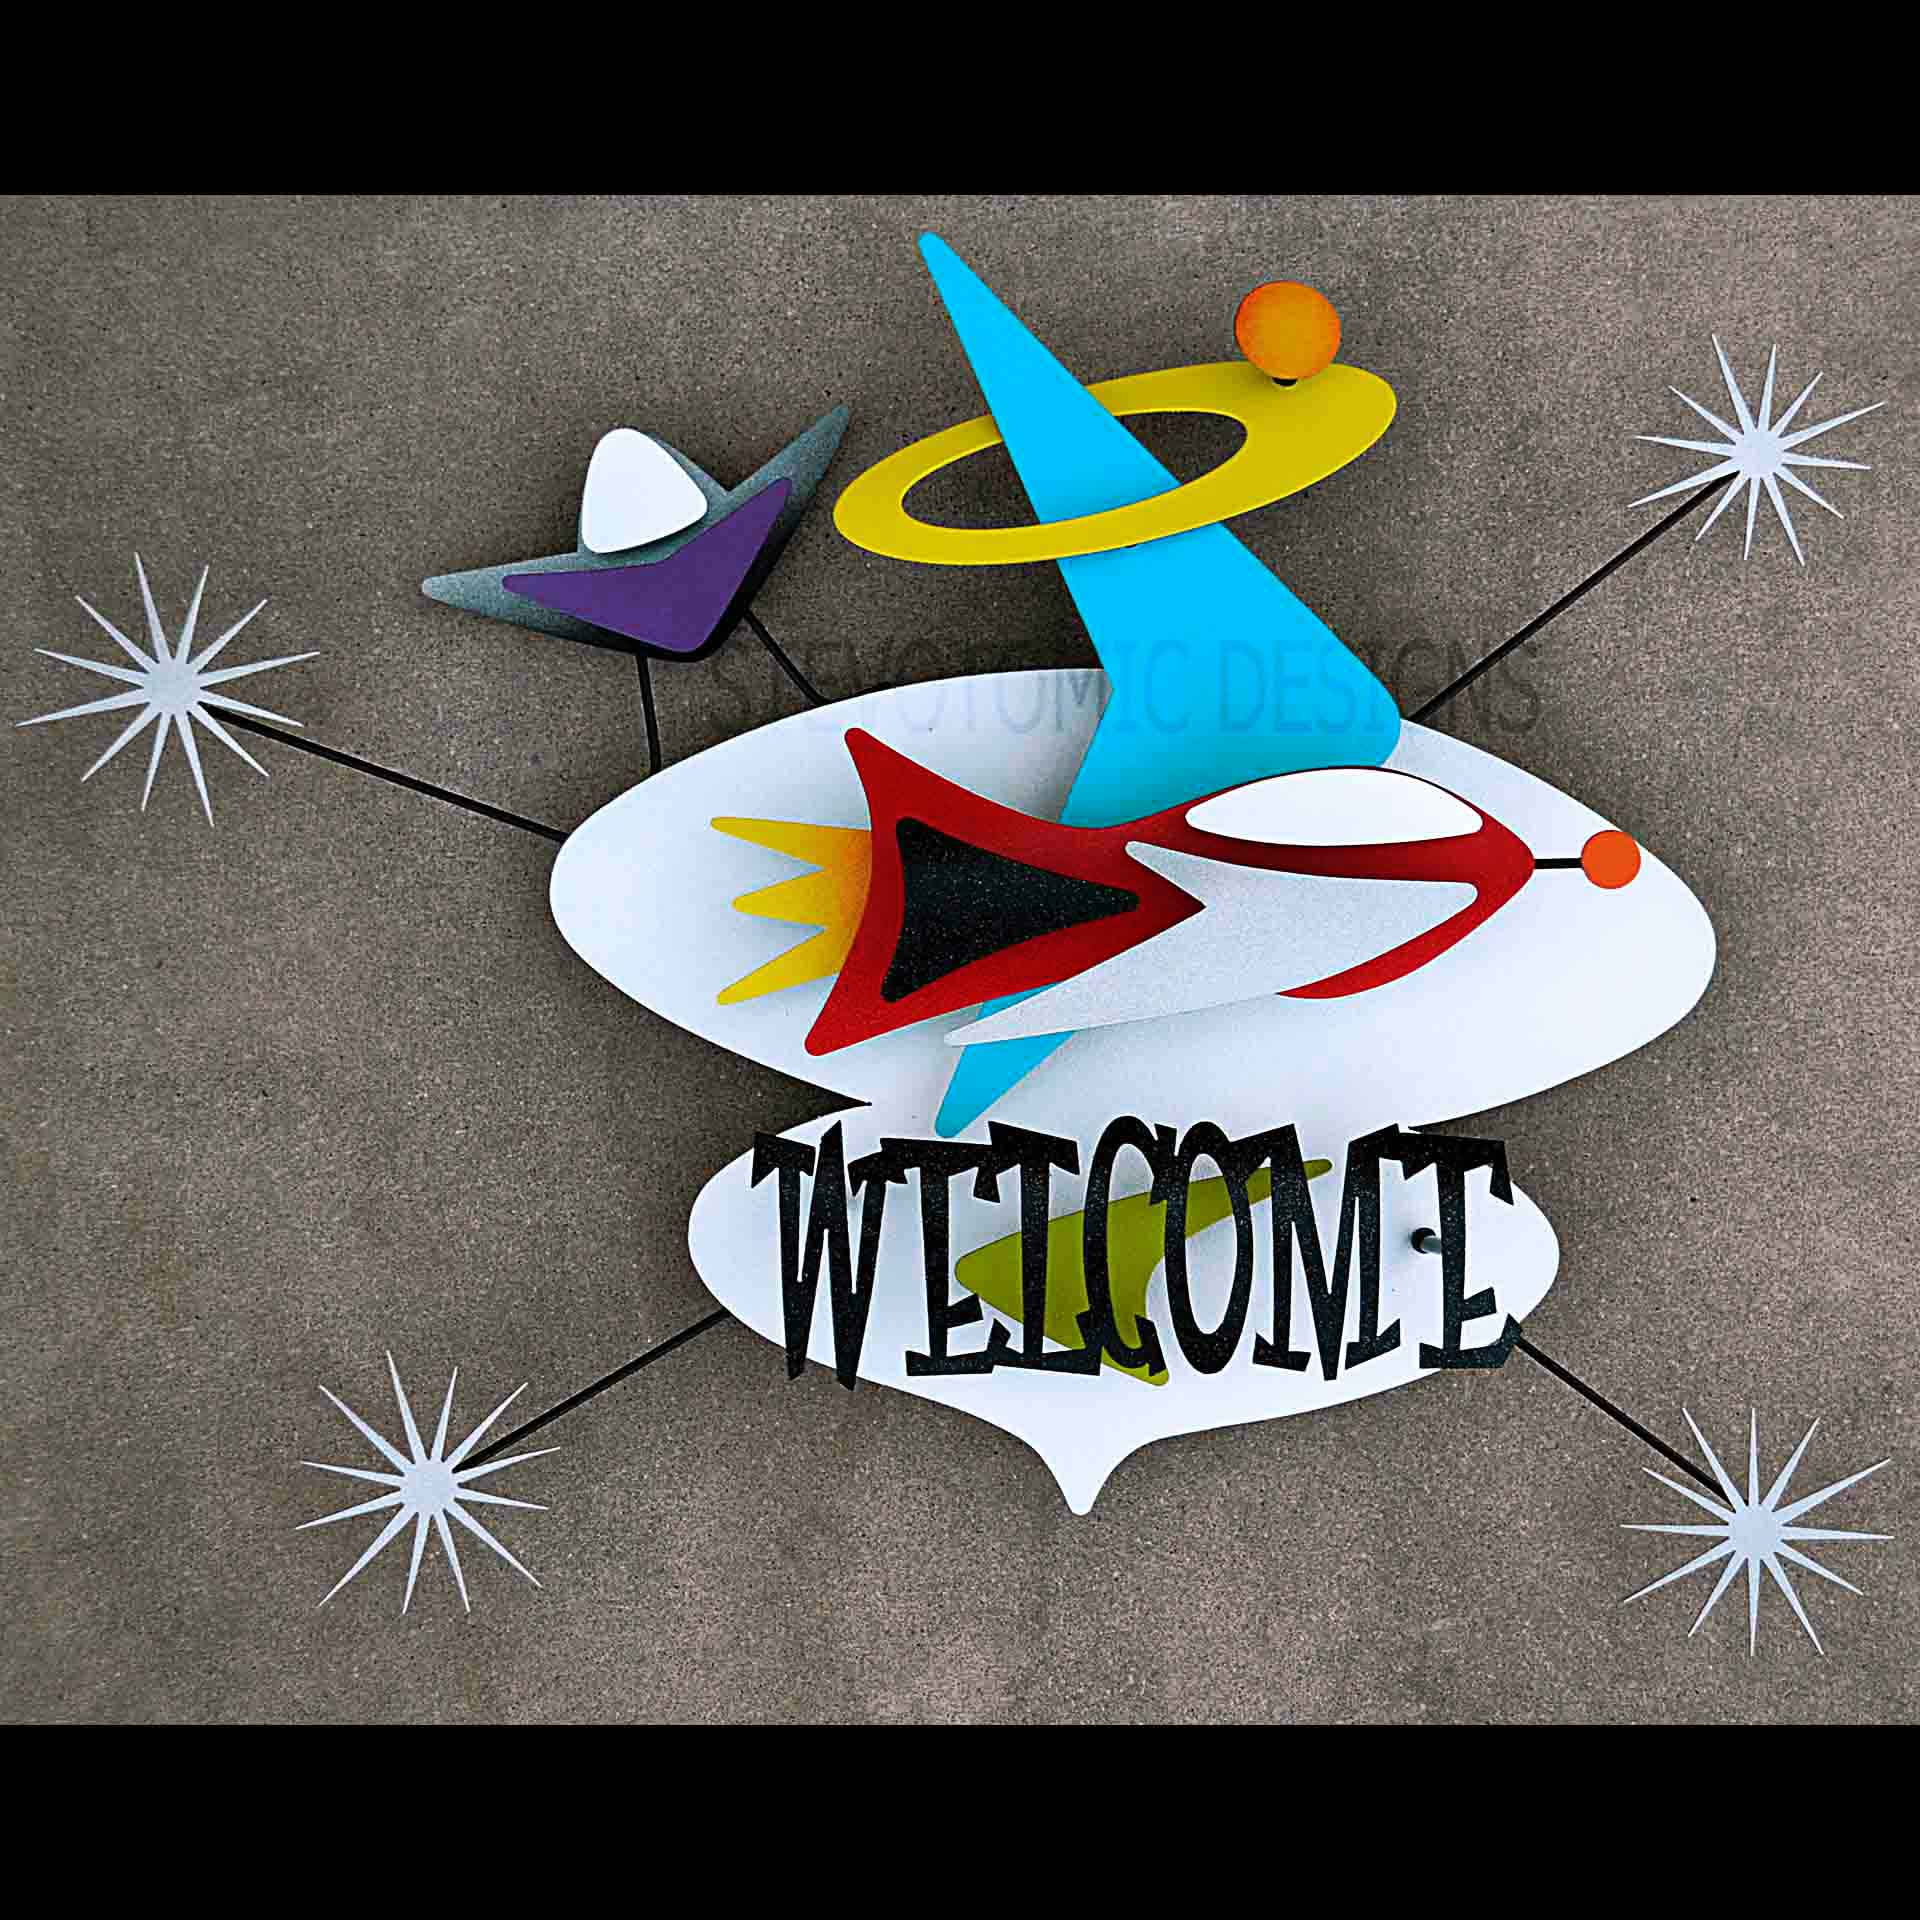 WELCOME-017-0008